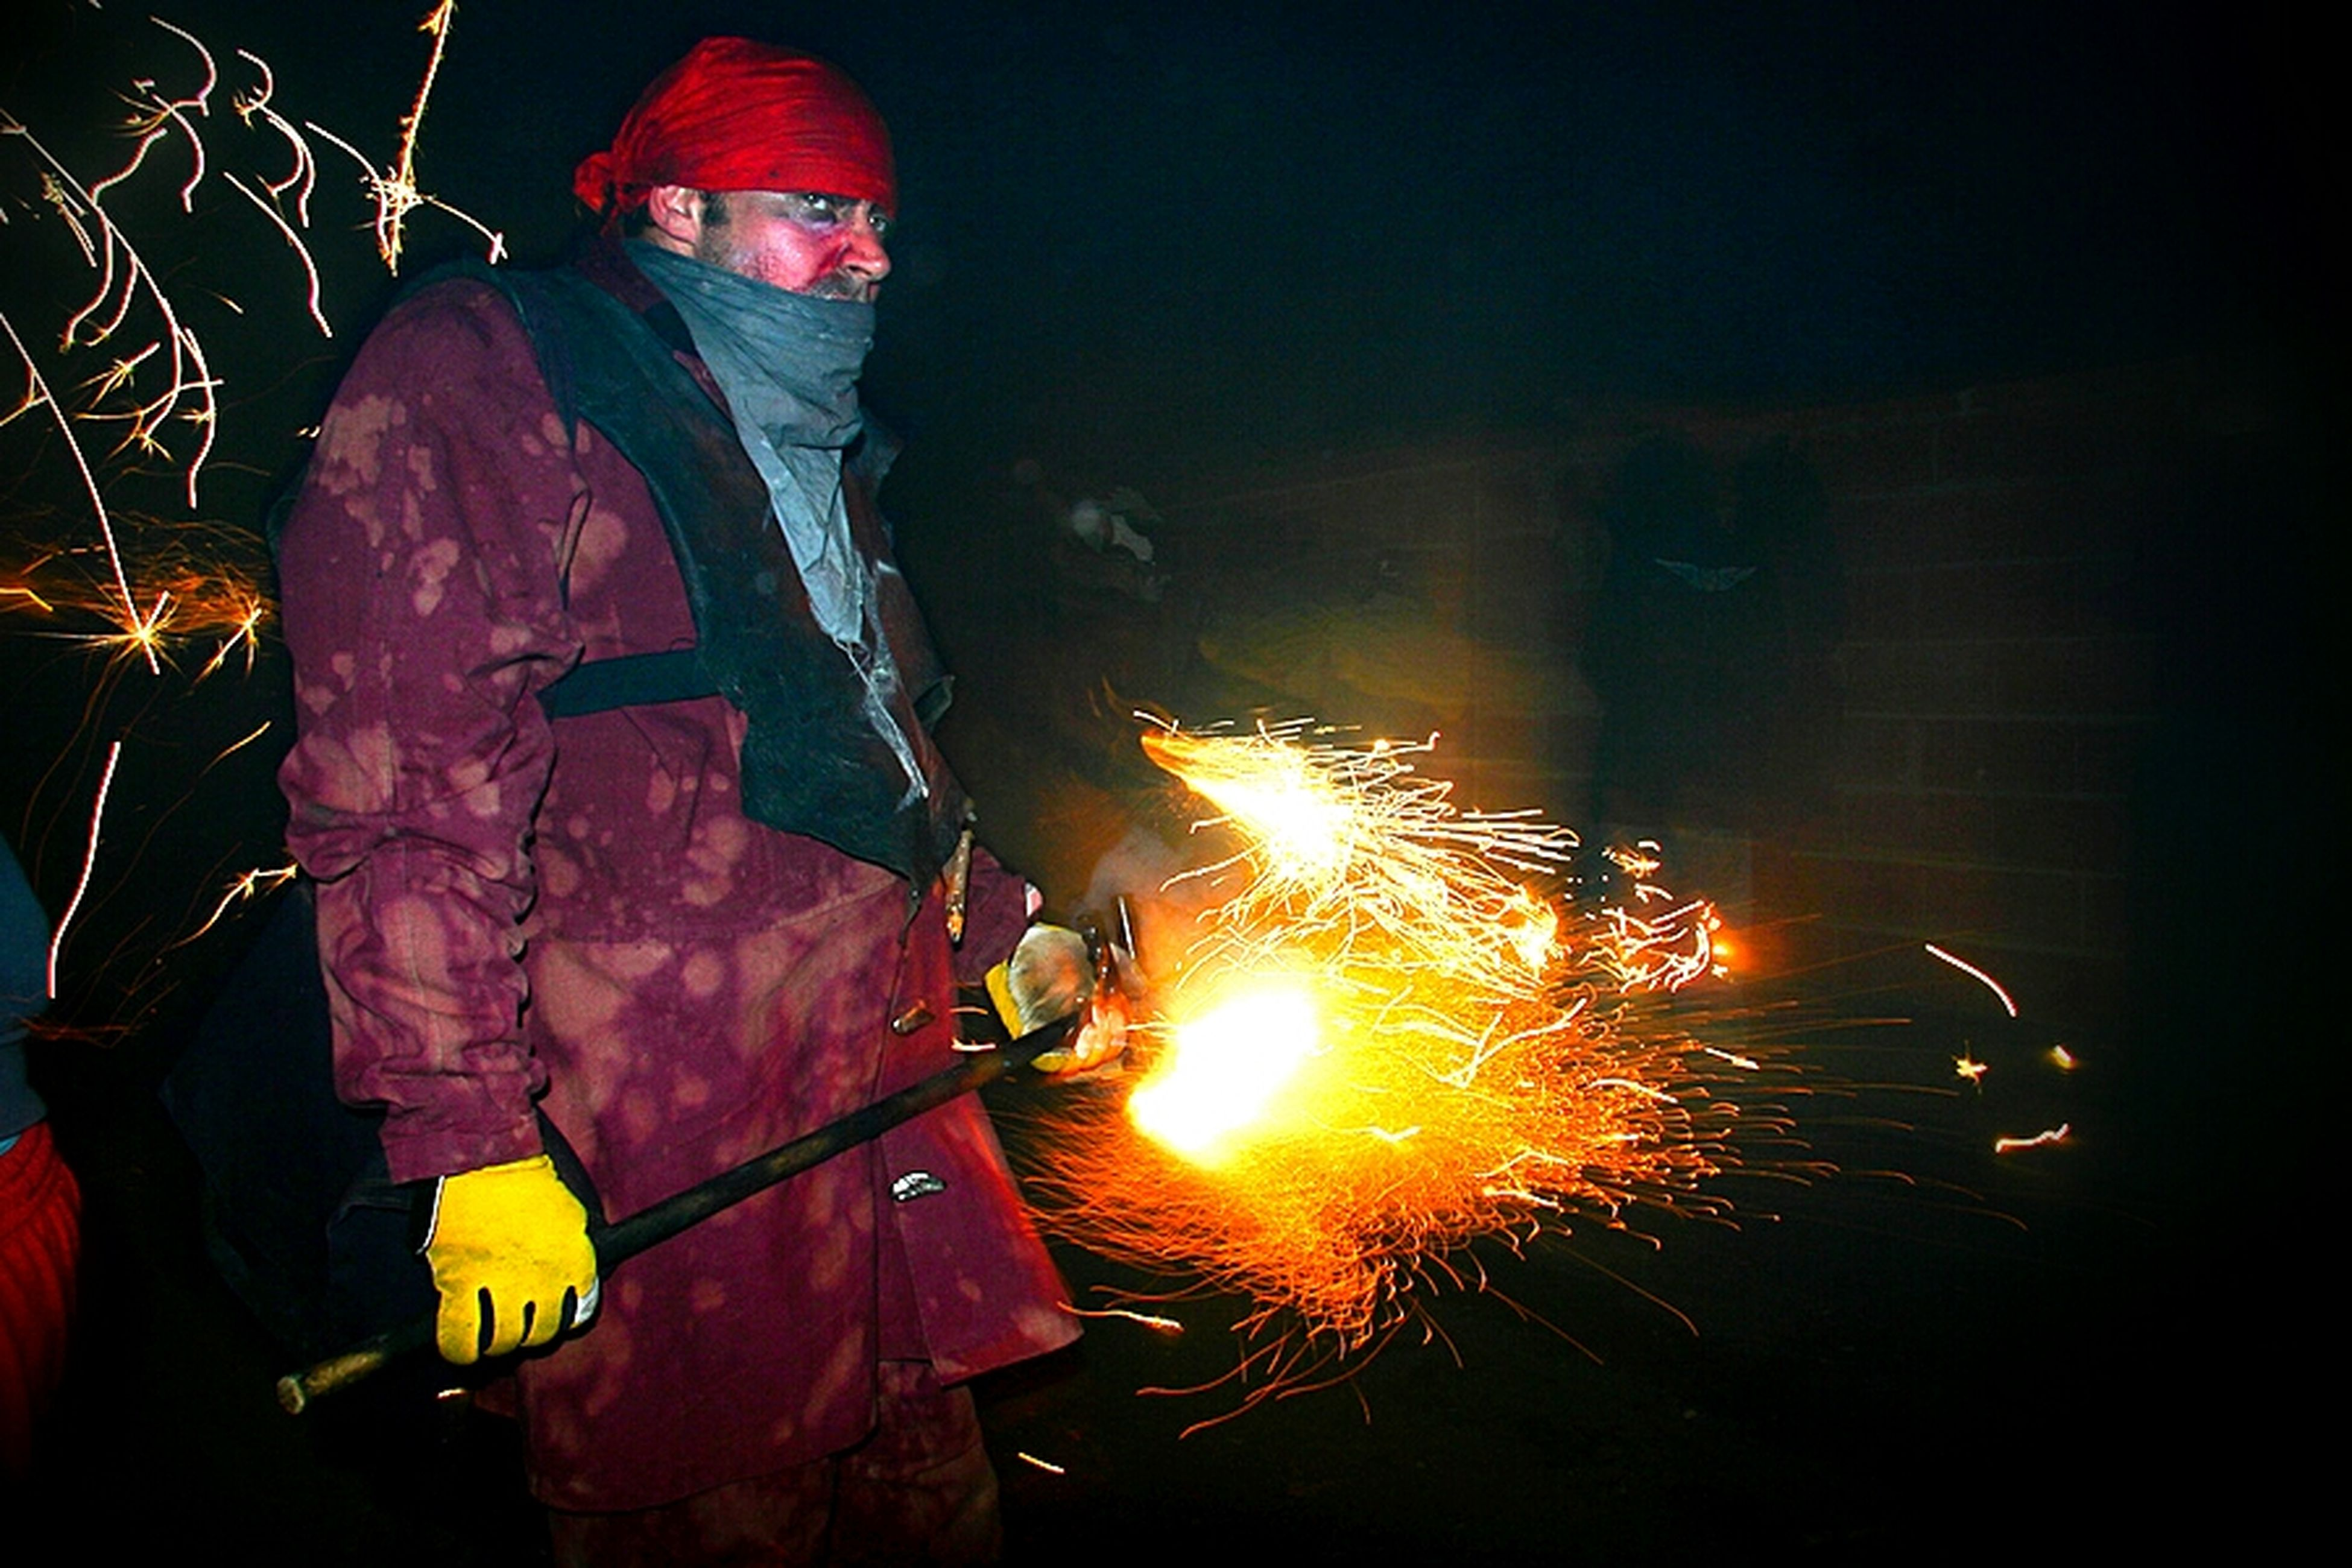 night, lifestyles, men, leisure activity, illuminated, red, rear view, arts culture and entertainment, outdoors, celebration, holding, fire - natural phenomenon, motion, orange color, glowing, burning, standing